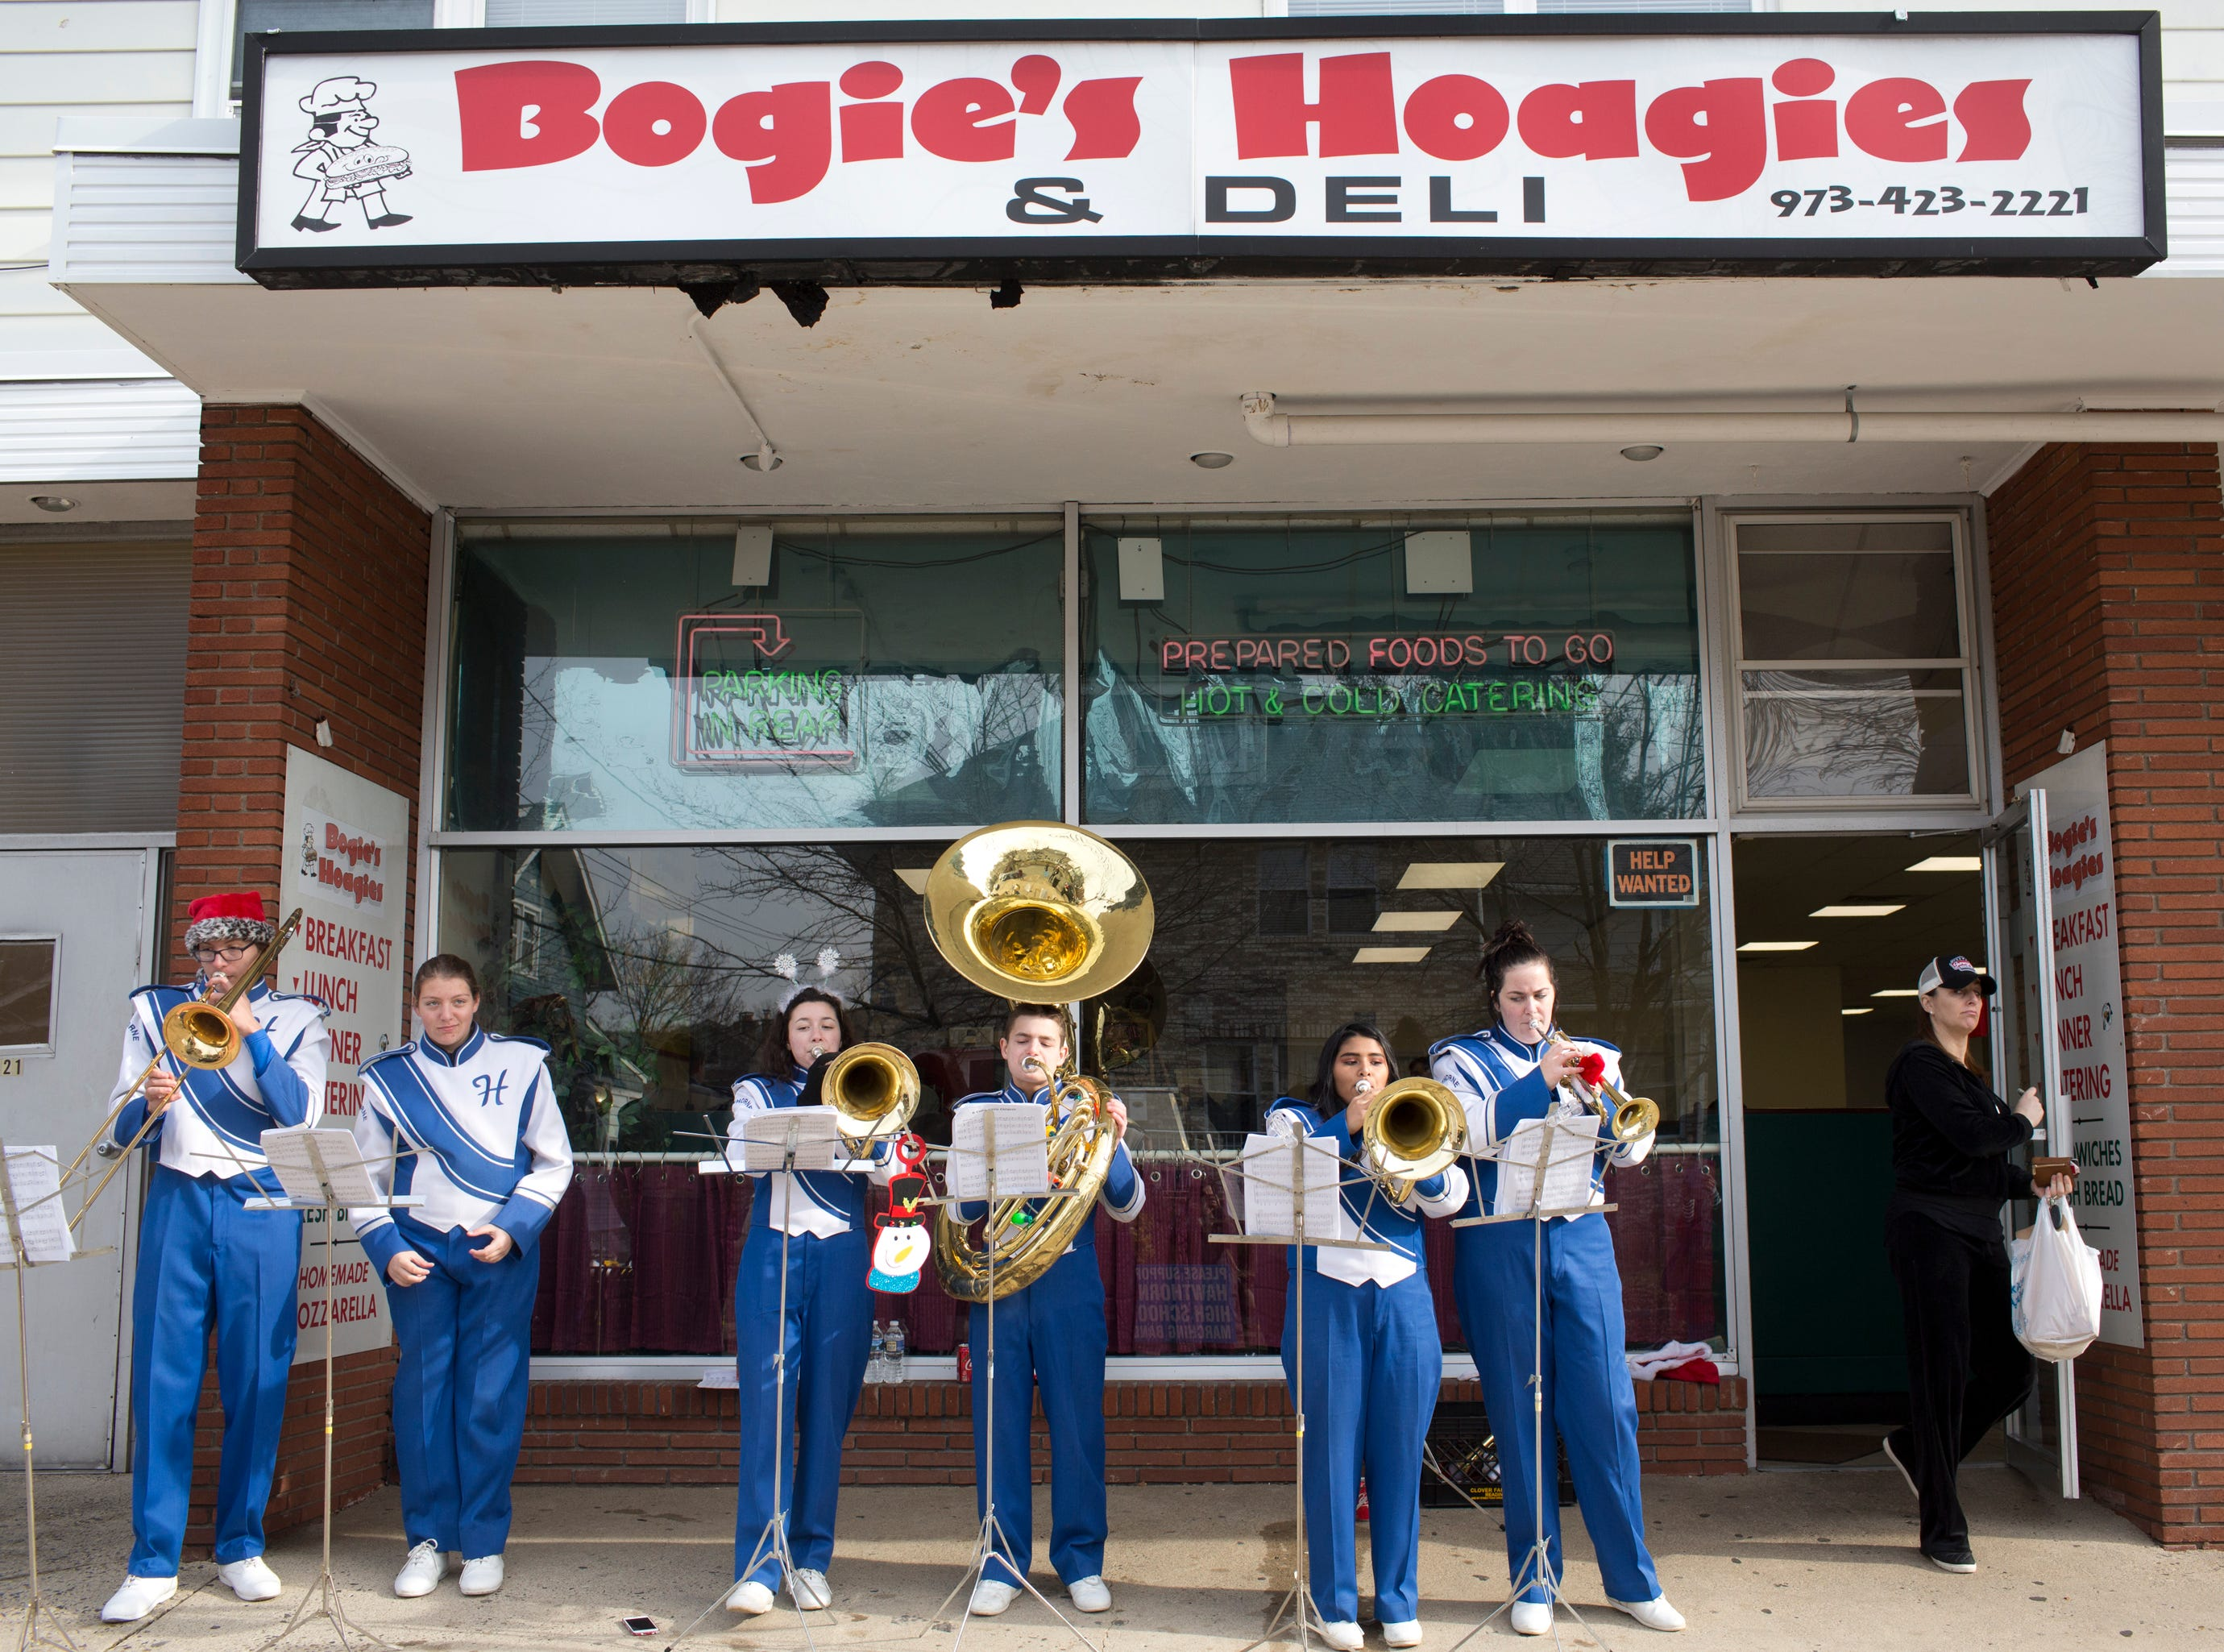 (From left) Daniel Sokolski, Meadow Ciccarella, Heather Scott, T.J. Marks, Maria Angeles and Paige Grenier with the Hawthorne High School Marching Band play some more holiday music outside of Bogie's Hoagies and Deli after the 33rd Annual Santa Parade in Hawthorne on Saturday, Dec. 1, 2018.